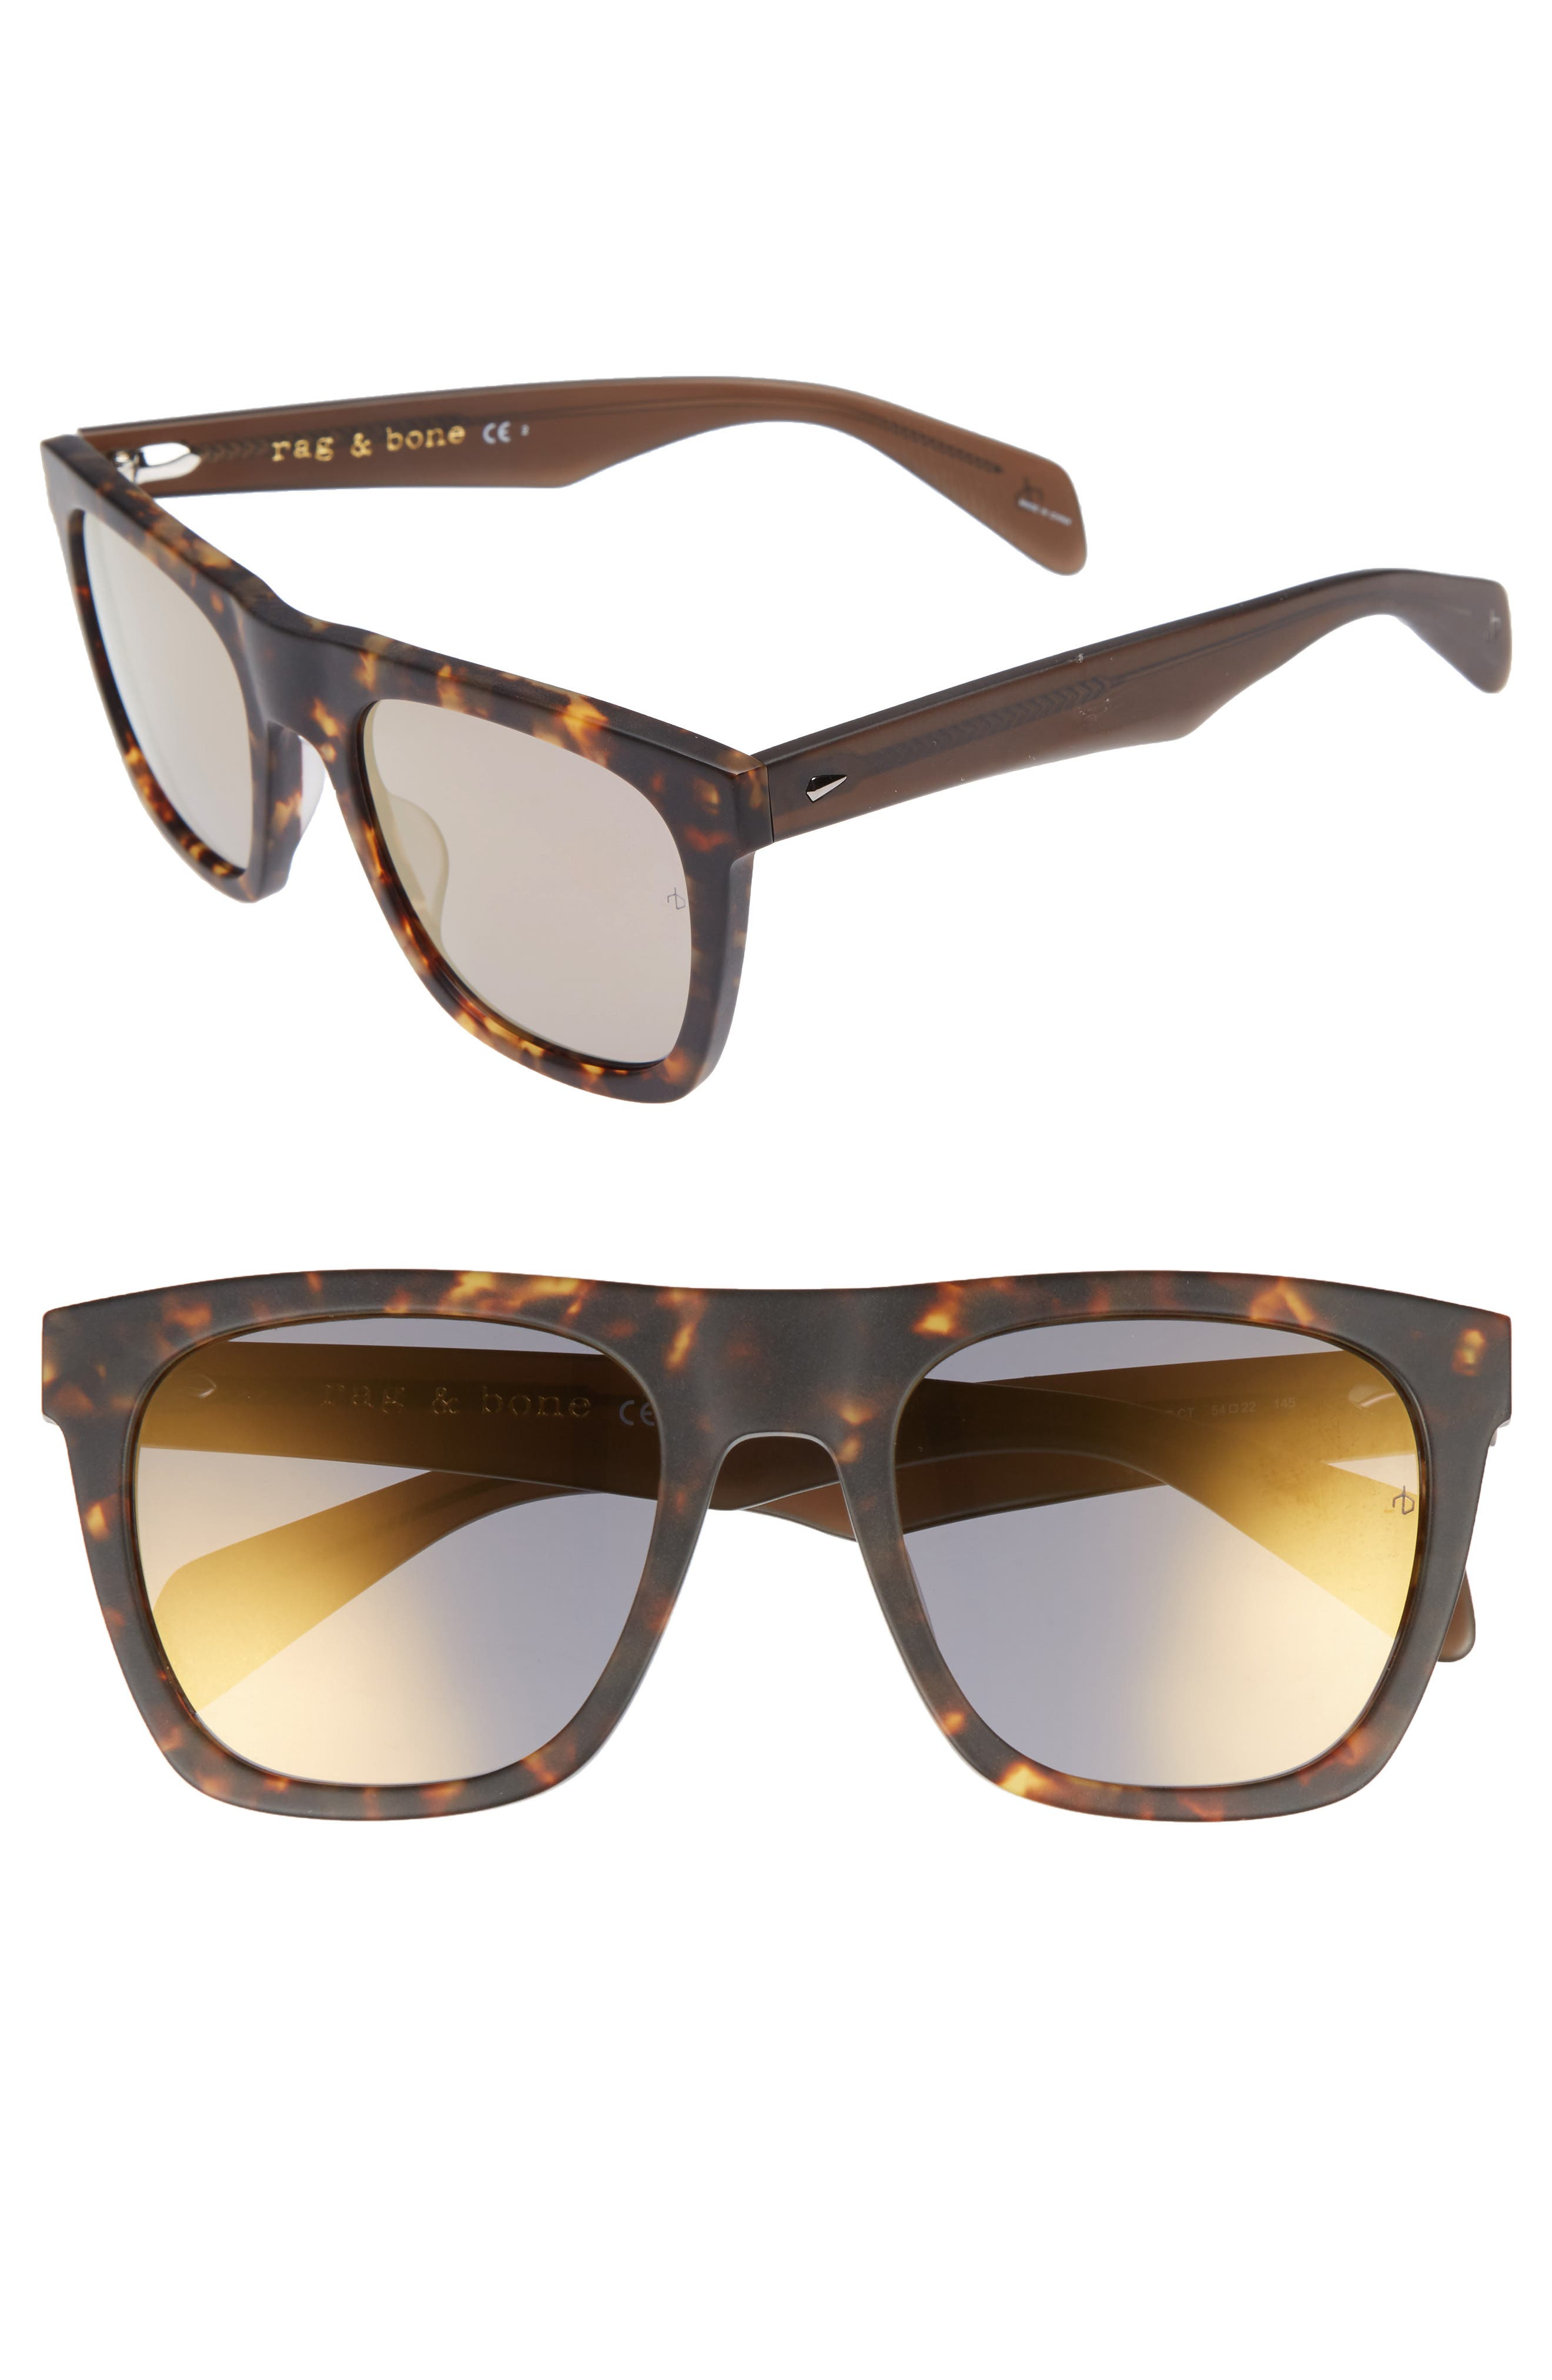 54mm Sunglasses,                         Main,                         color, Matte Havana